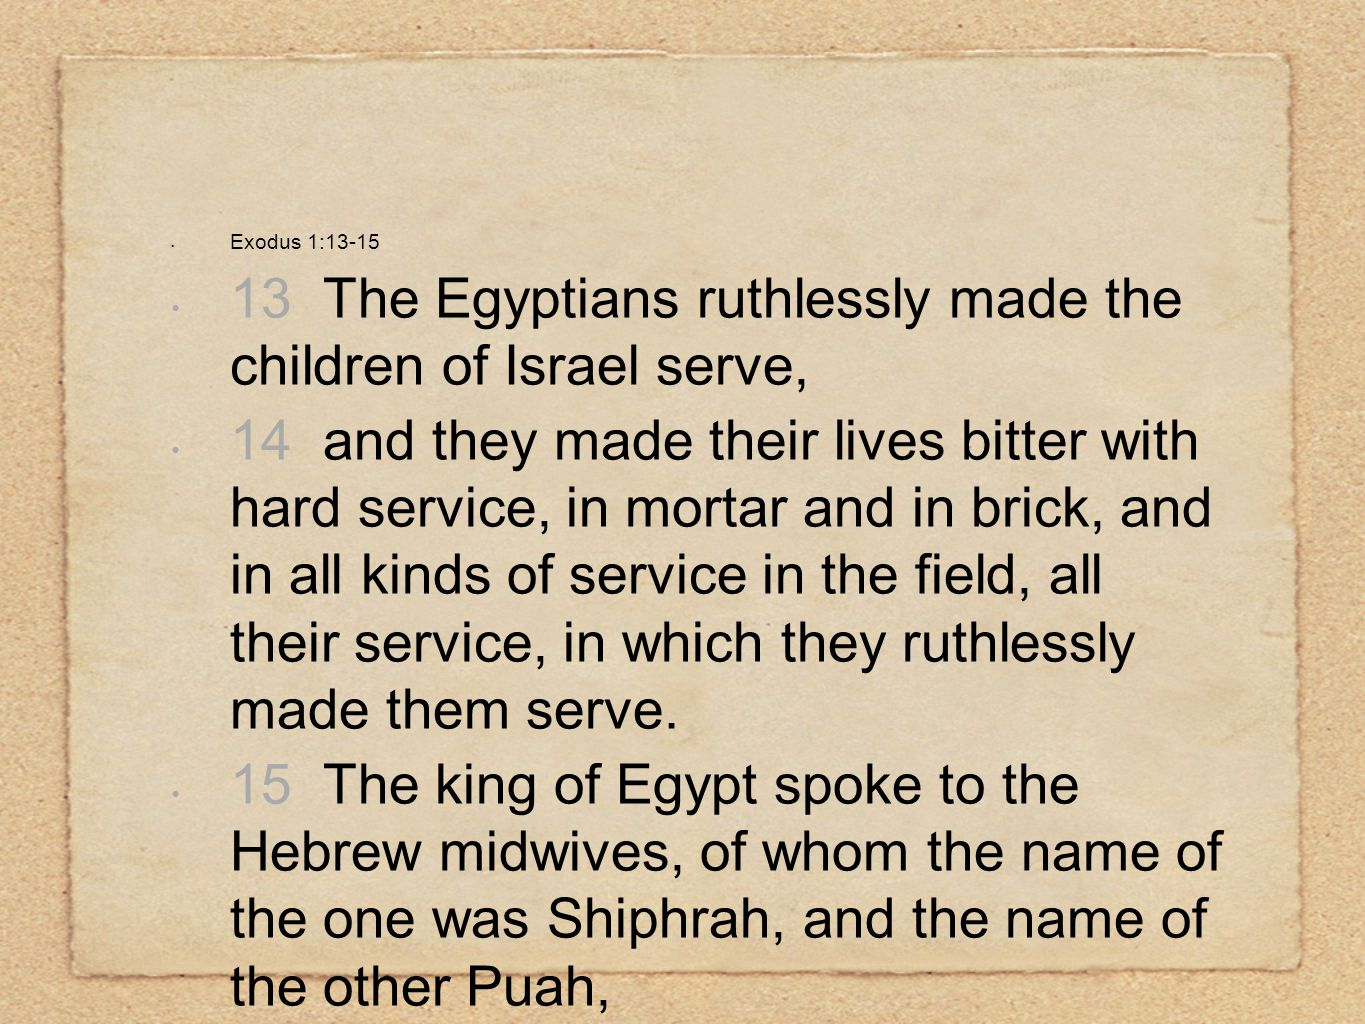 Exodus 1:13-15 13 The Egyptians ruthlessly made the children of Israel serve, 14 and they made their lives bitter with hard service, in mortar and in brick, and in all kinds of service in the field, all their service, in which they ruthlessly made them serve.